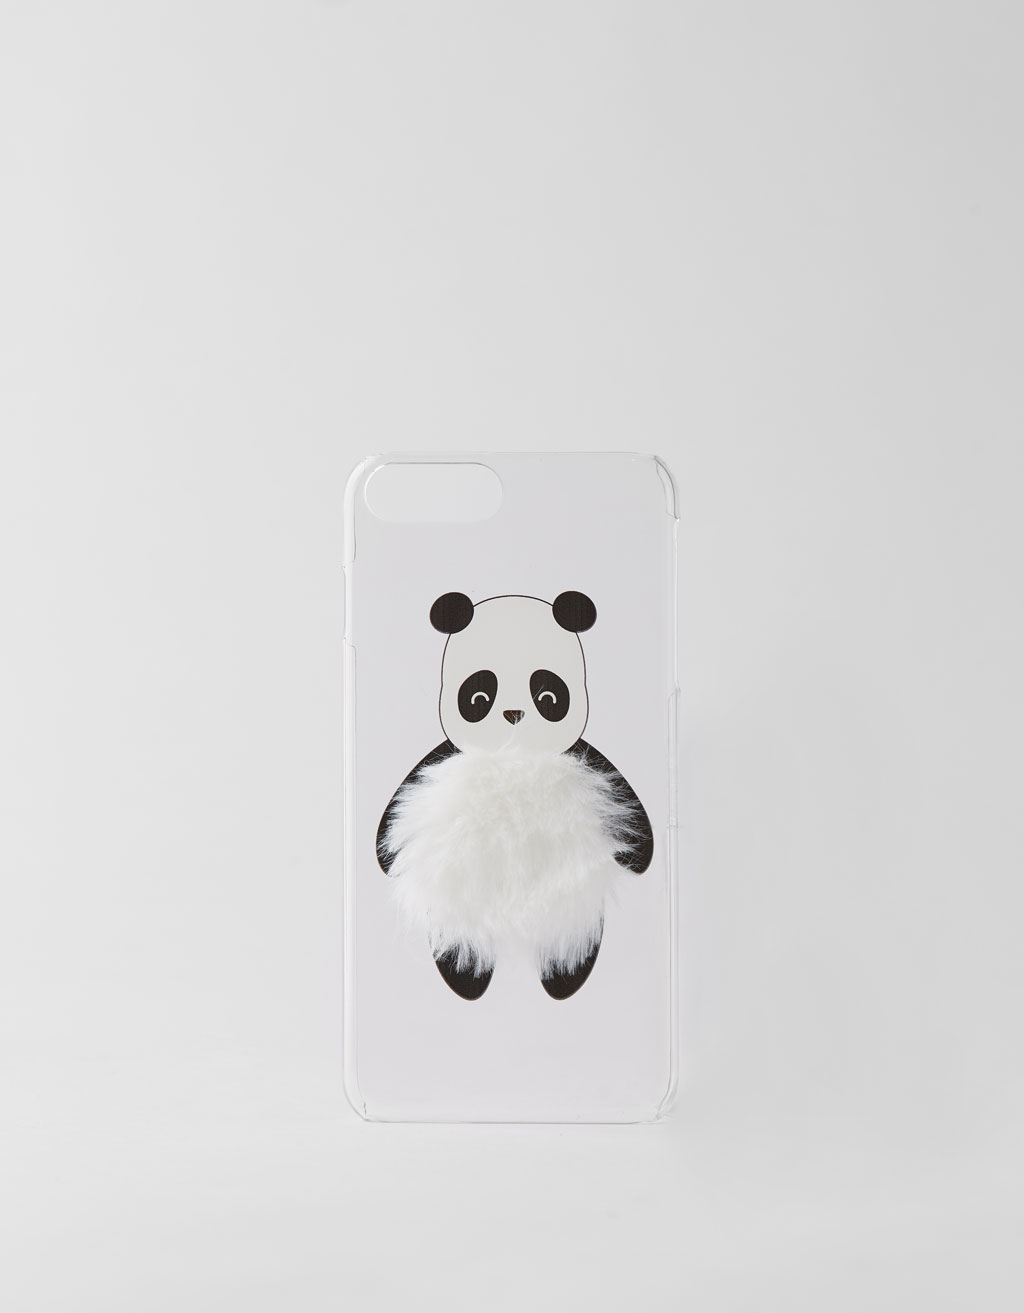 Panda iPhone 6 Plus / 7 Plus / 8 Plus case